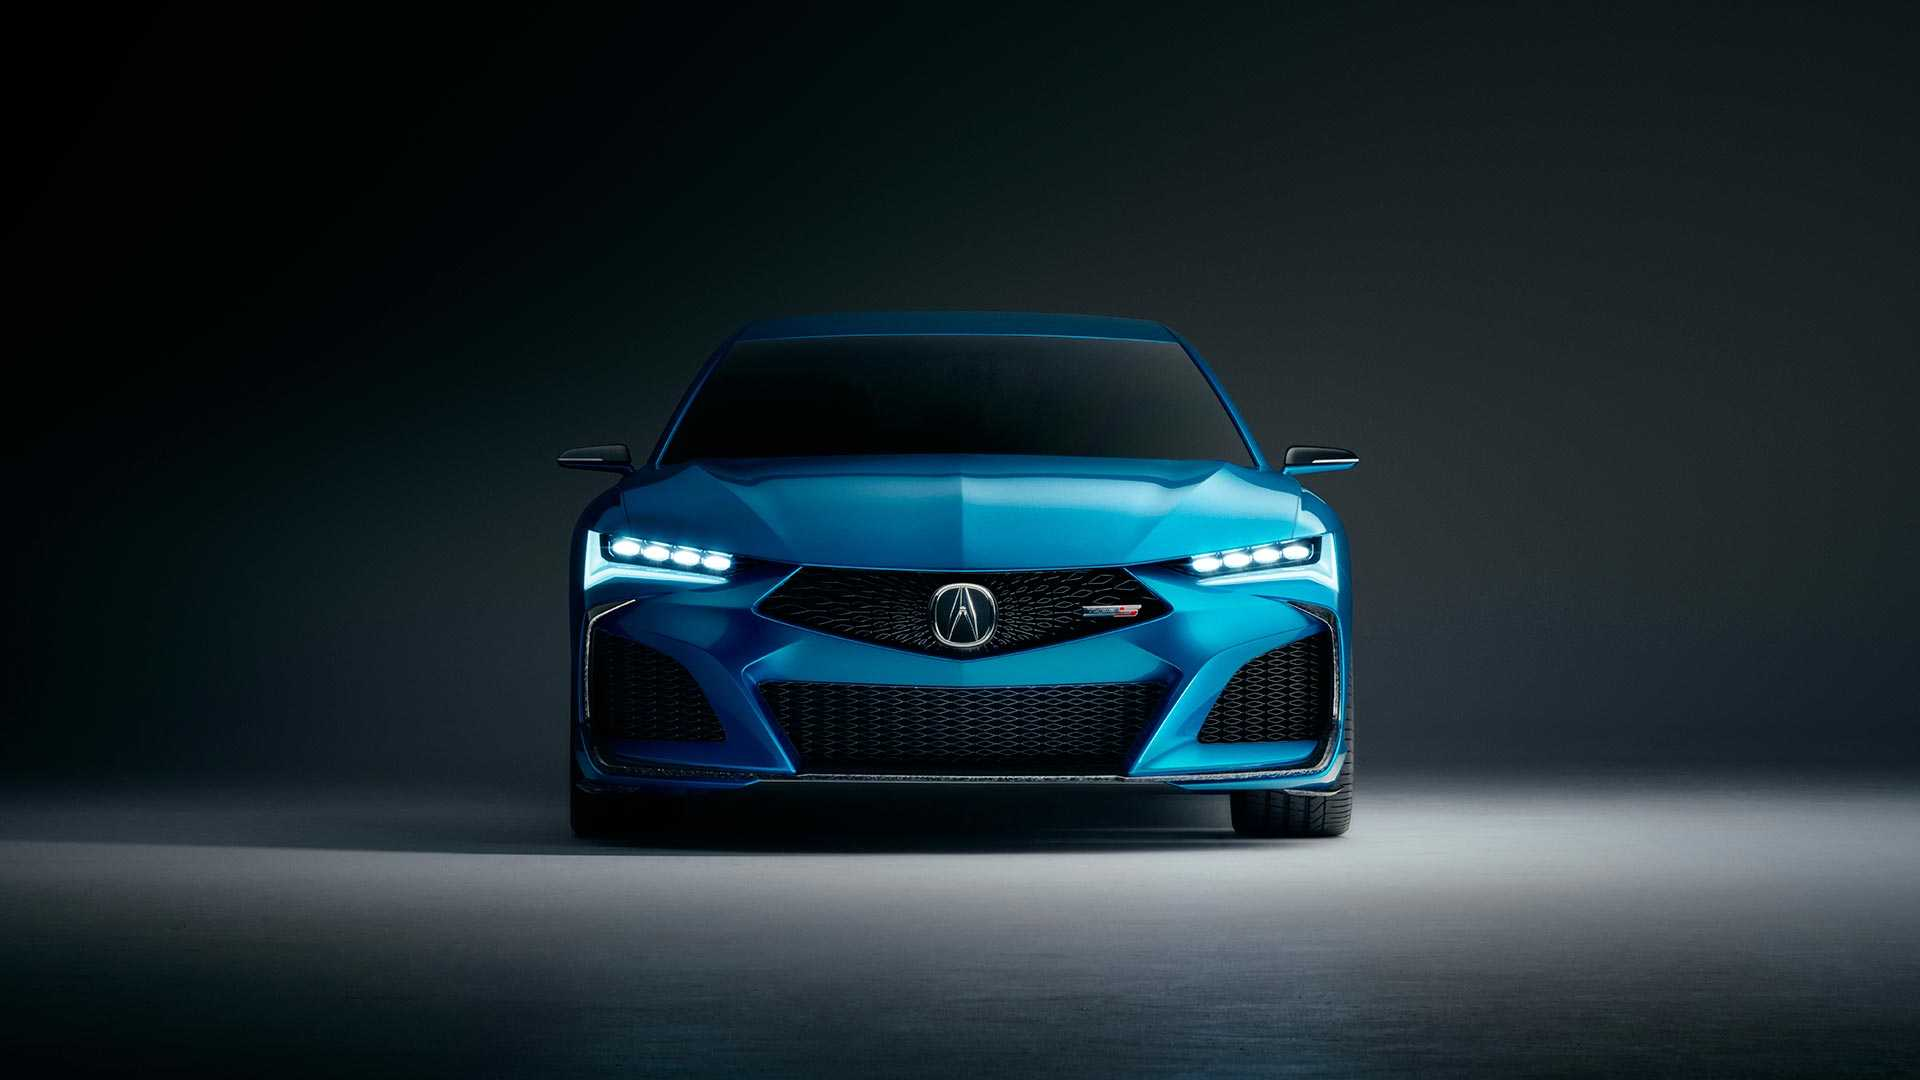 2019 Acura Type S Concept Front Wallpapers (3)